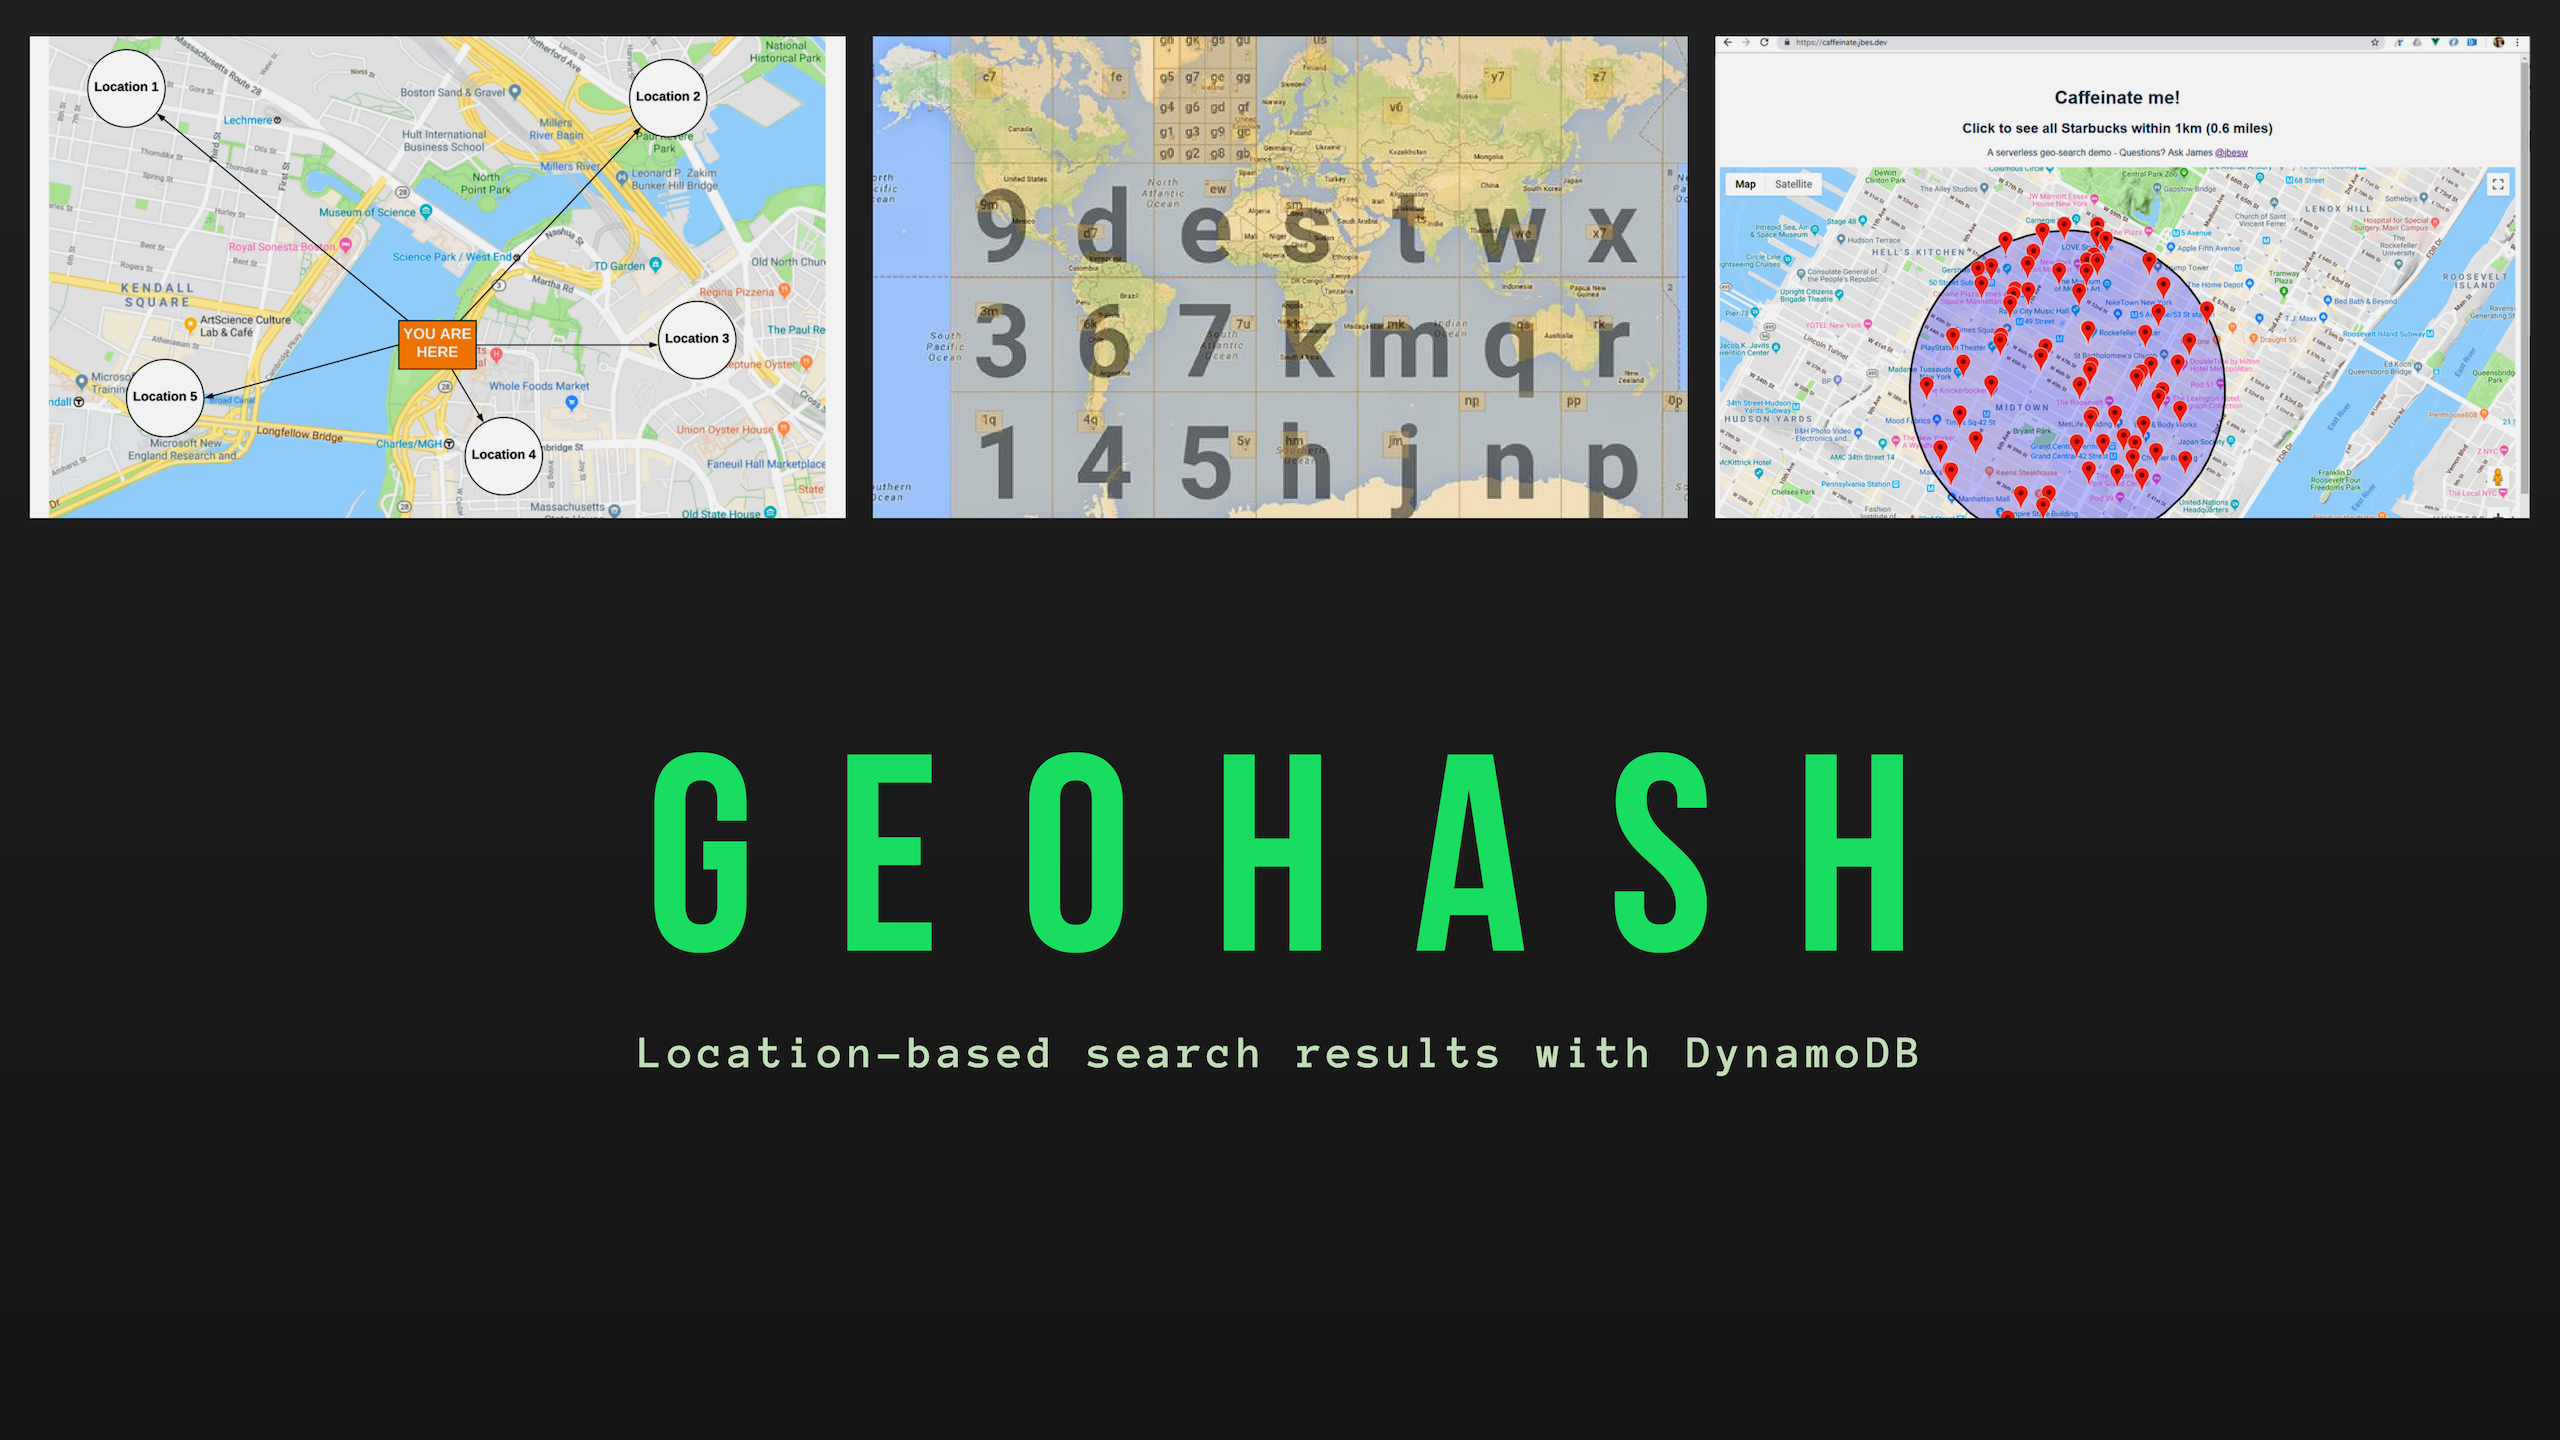 Location-based search results with DynamoDB and Geohash